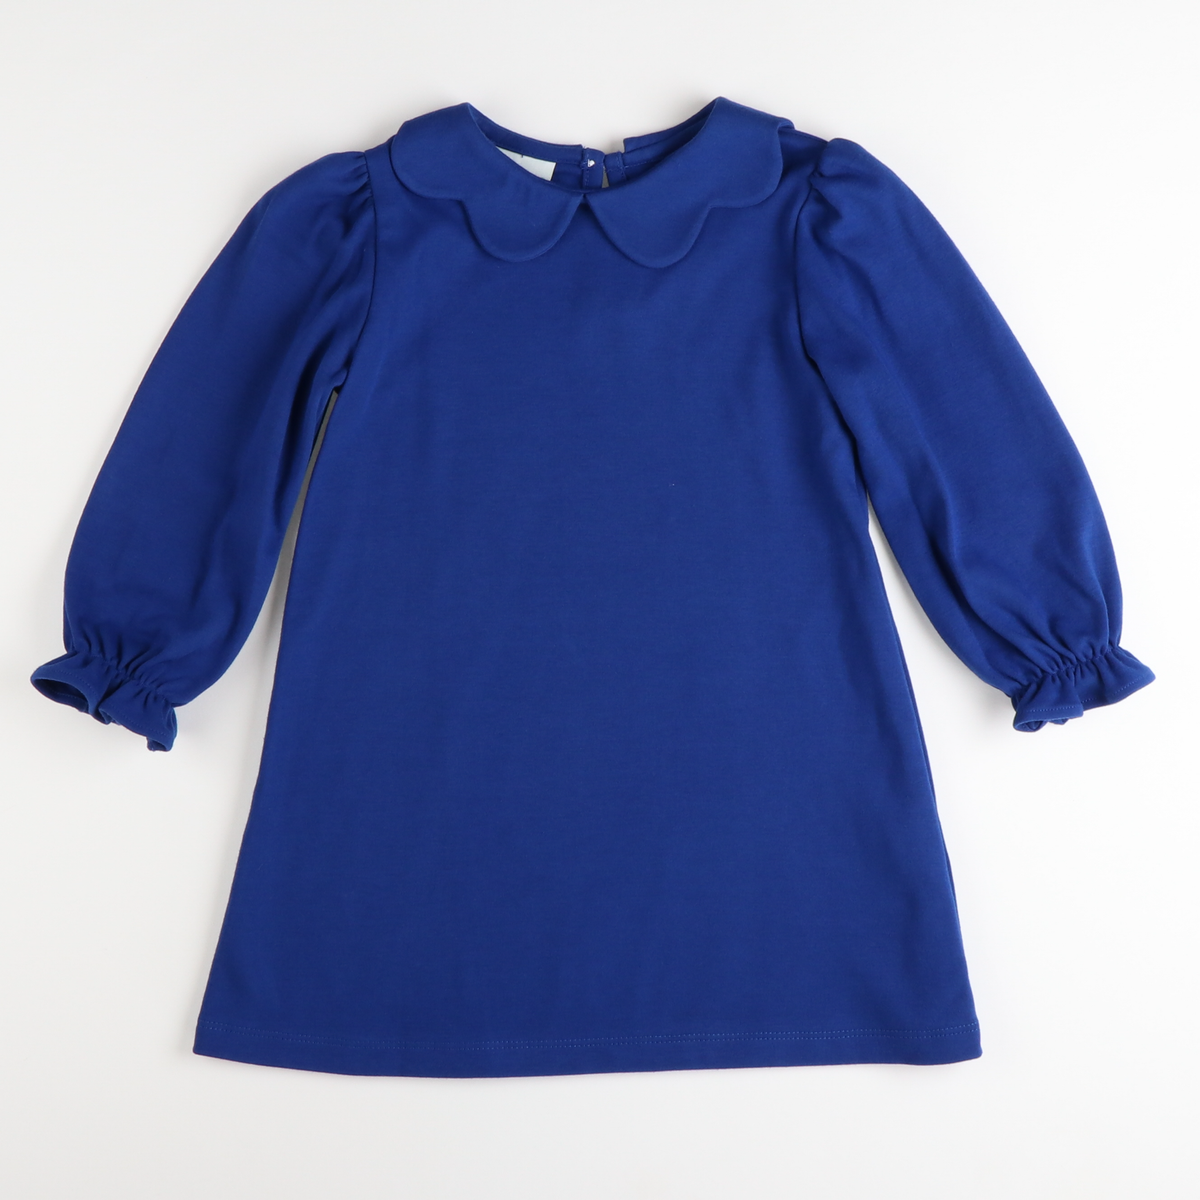 Scallop Collared Dress - Royal Blue Knit